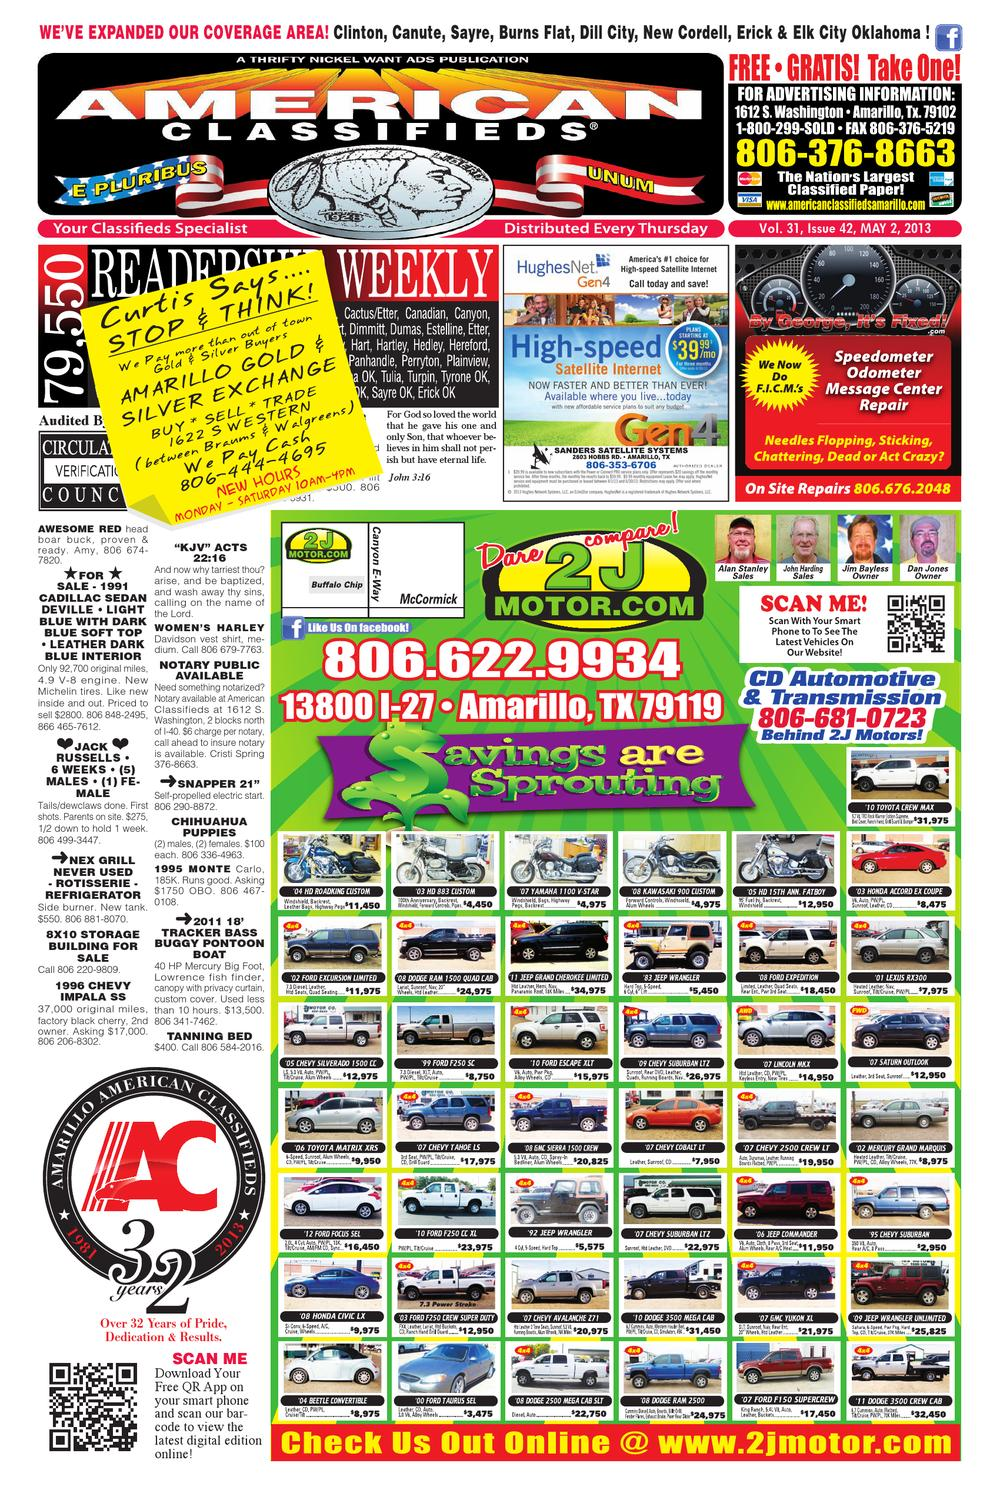 American Classifieds | Amarillo, TX | May 2, 2013 by